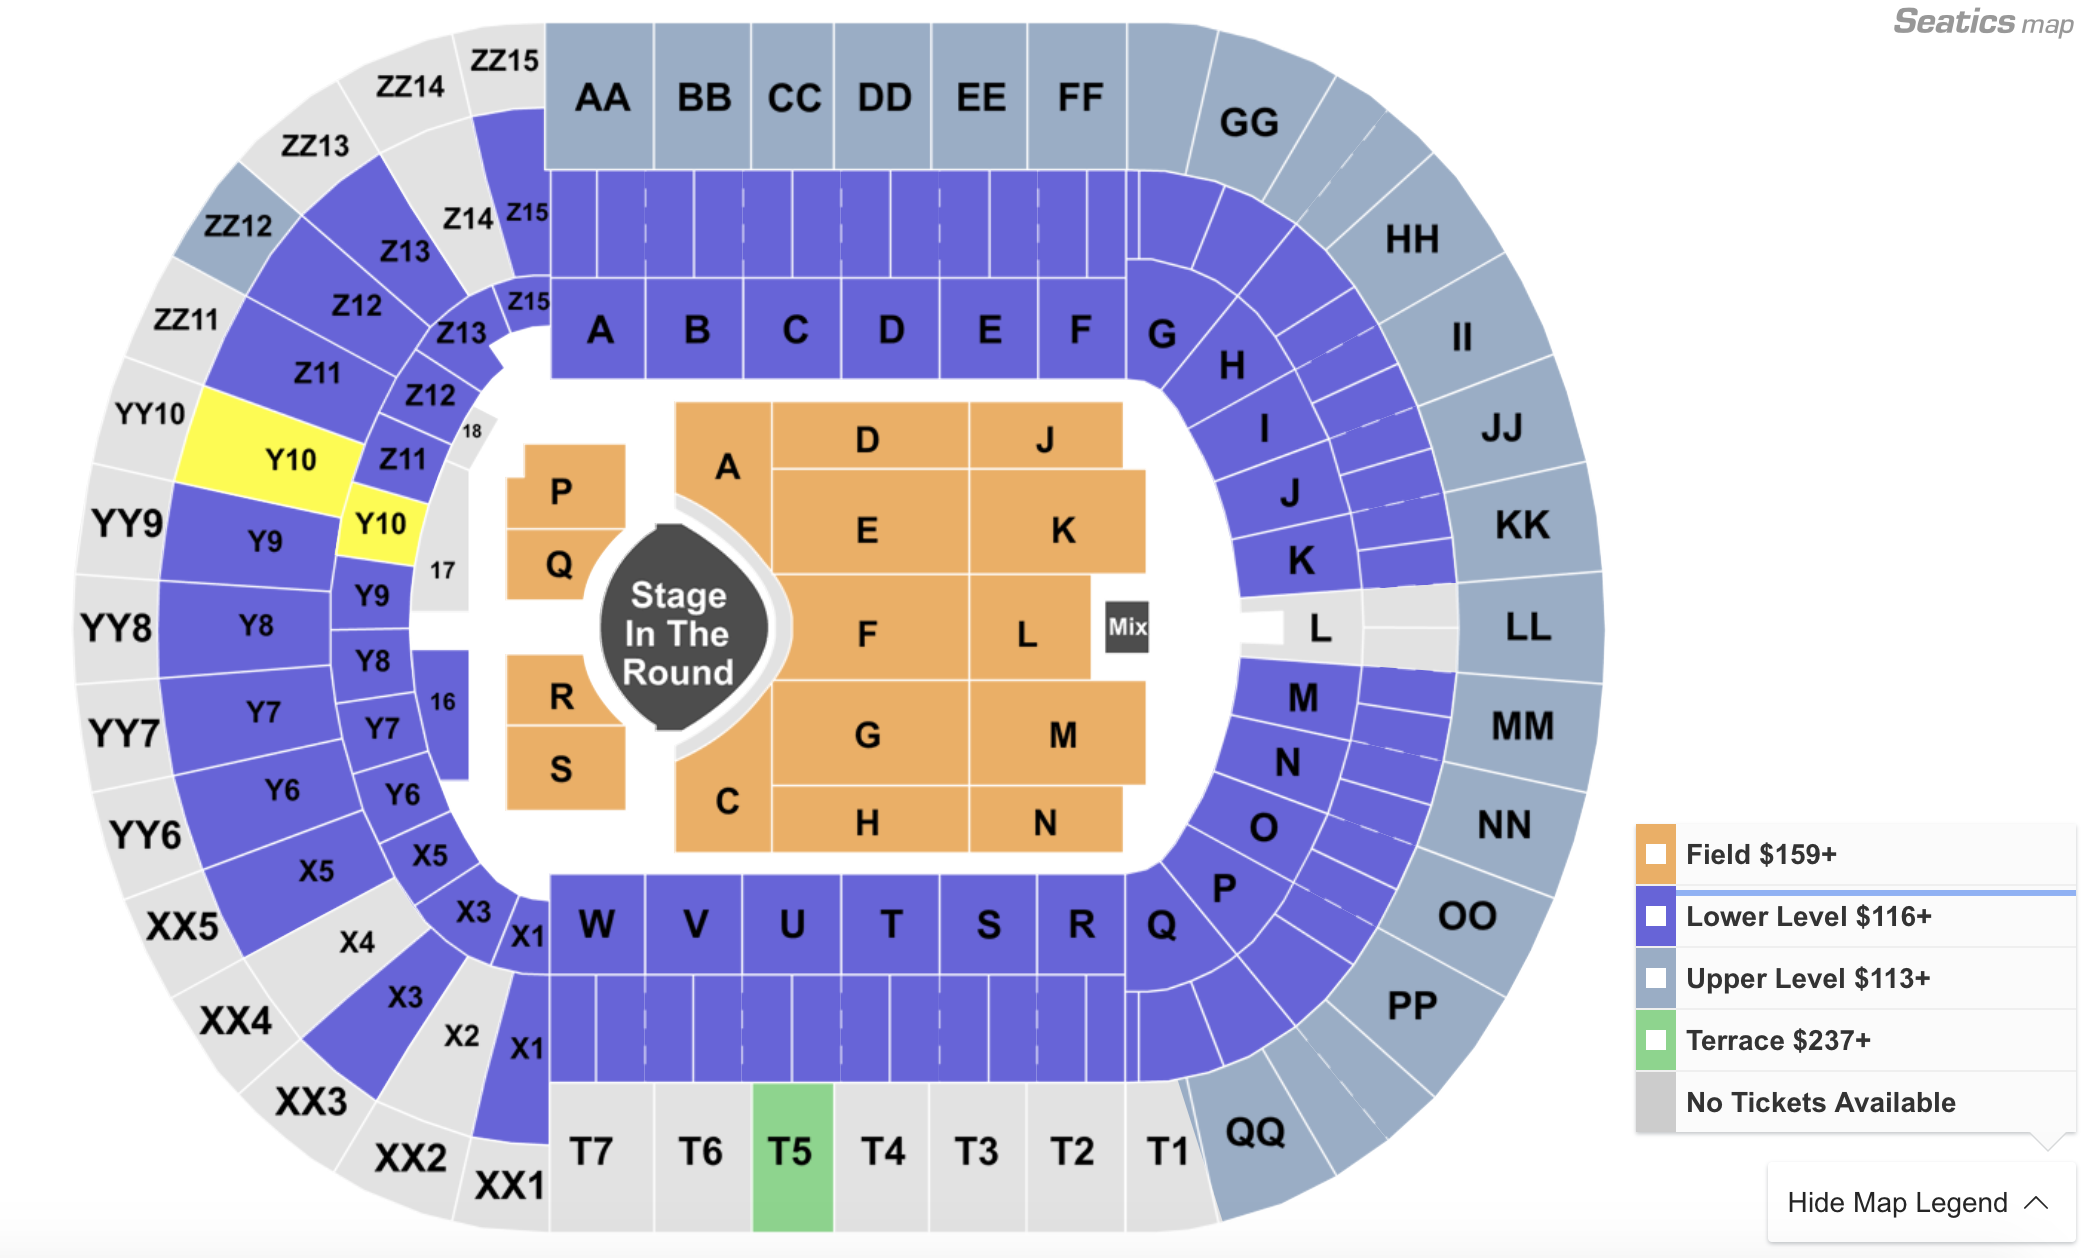 How To Get Cheap Garth Brooks Tickets + Face Value Options & Onsale News